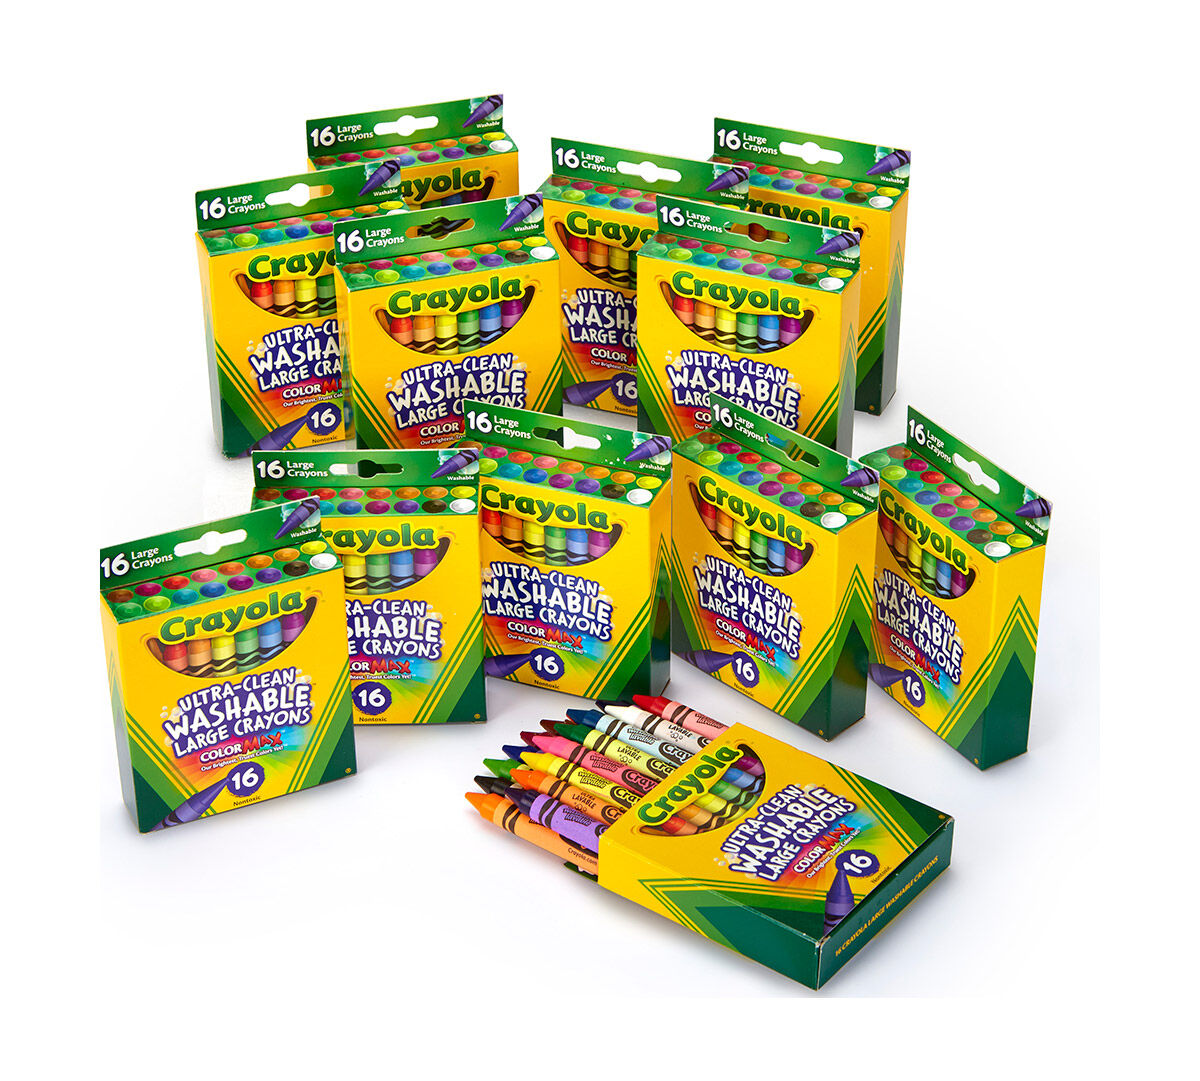 Washable Crayons, 12 Packs of 24 Count   Crayola.com